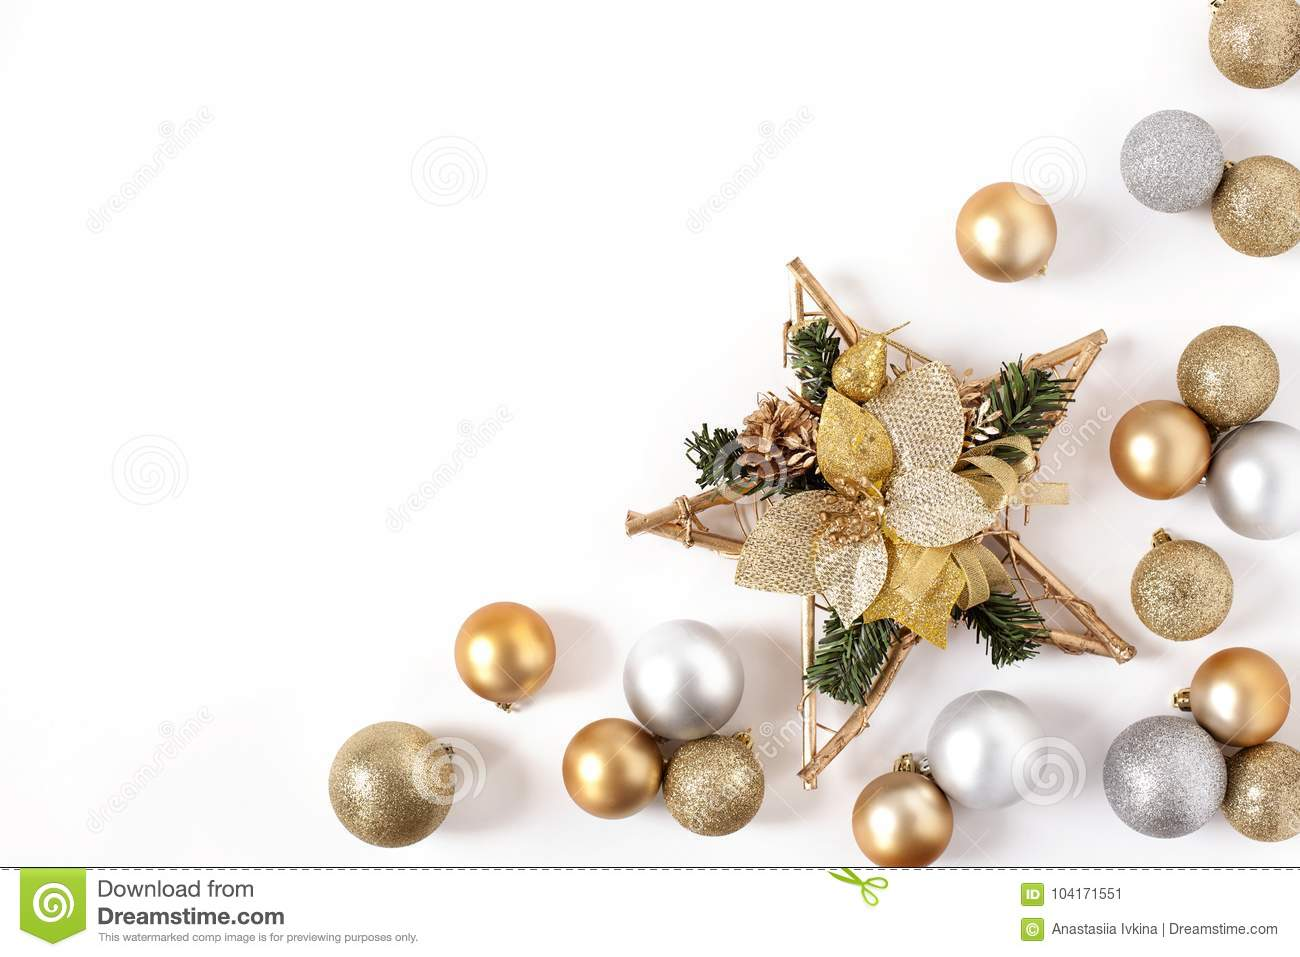 fa4b192c91db Frame Golden and Silver Balls, Christmas star Top view White Background  Christmas New Year. More similar stock images